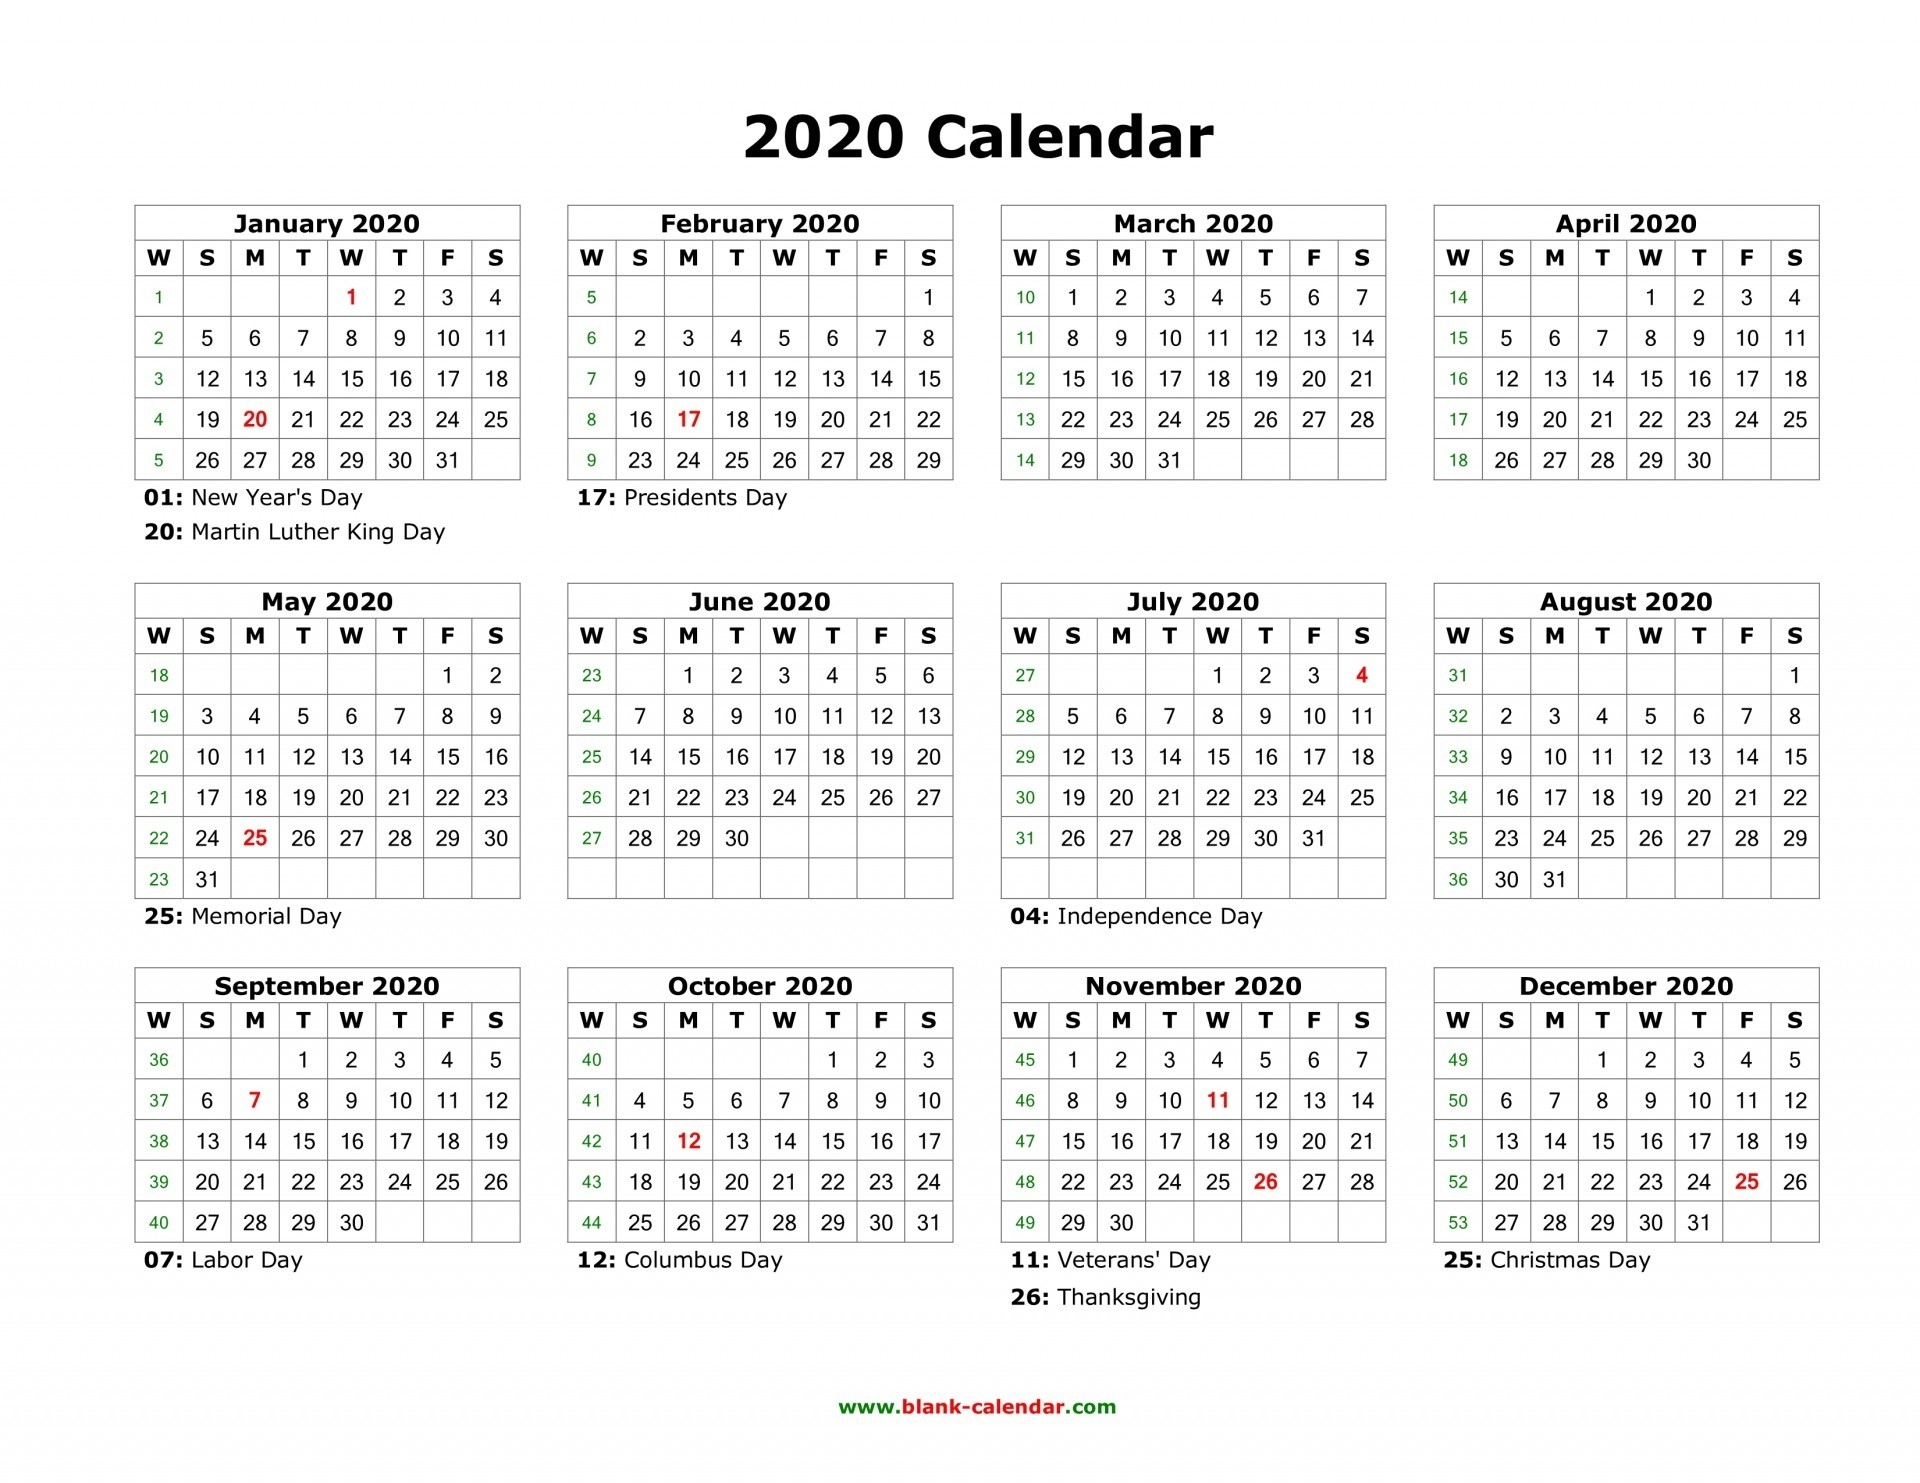 002 Printable Word Yearly Calendar Holidays Blank Top 2020-2020 Calendar With Holidays South Africa